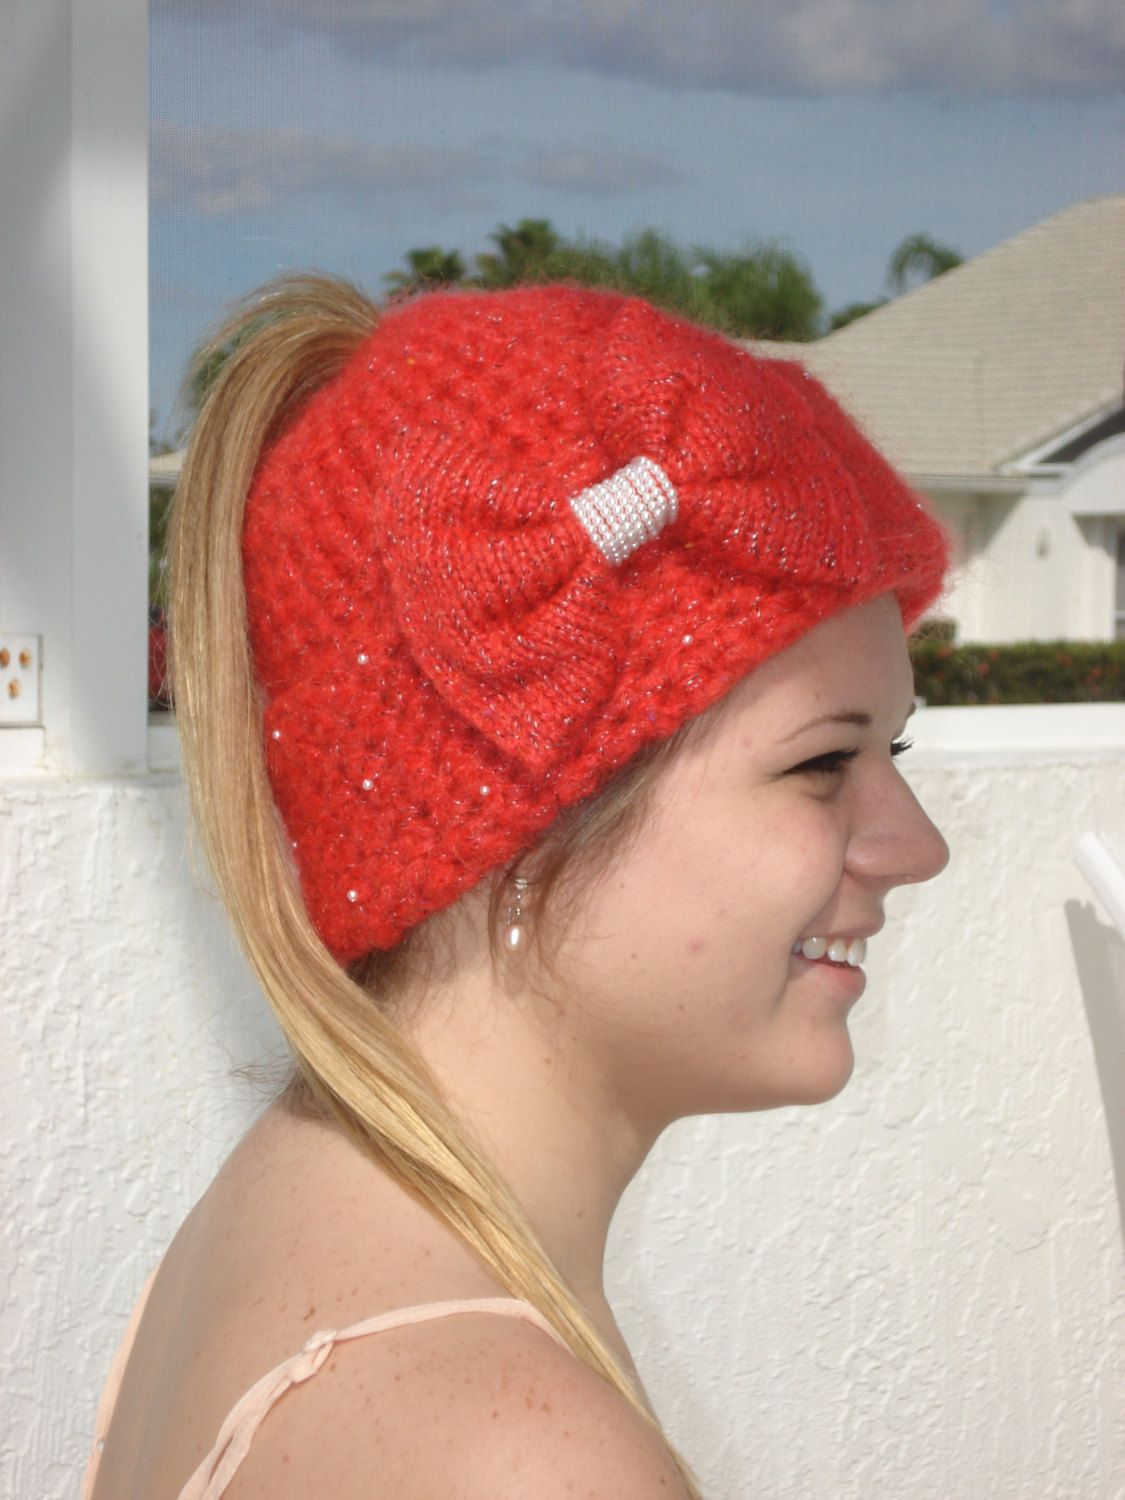 Handmade red crochet and knit ponytail hat embellished with bow handmade red crochet and knit ponytail hat embellished with bow and pearls 4000 crochet pattern freehat bankloansurffo Images